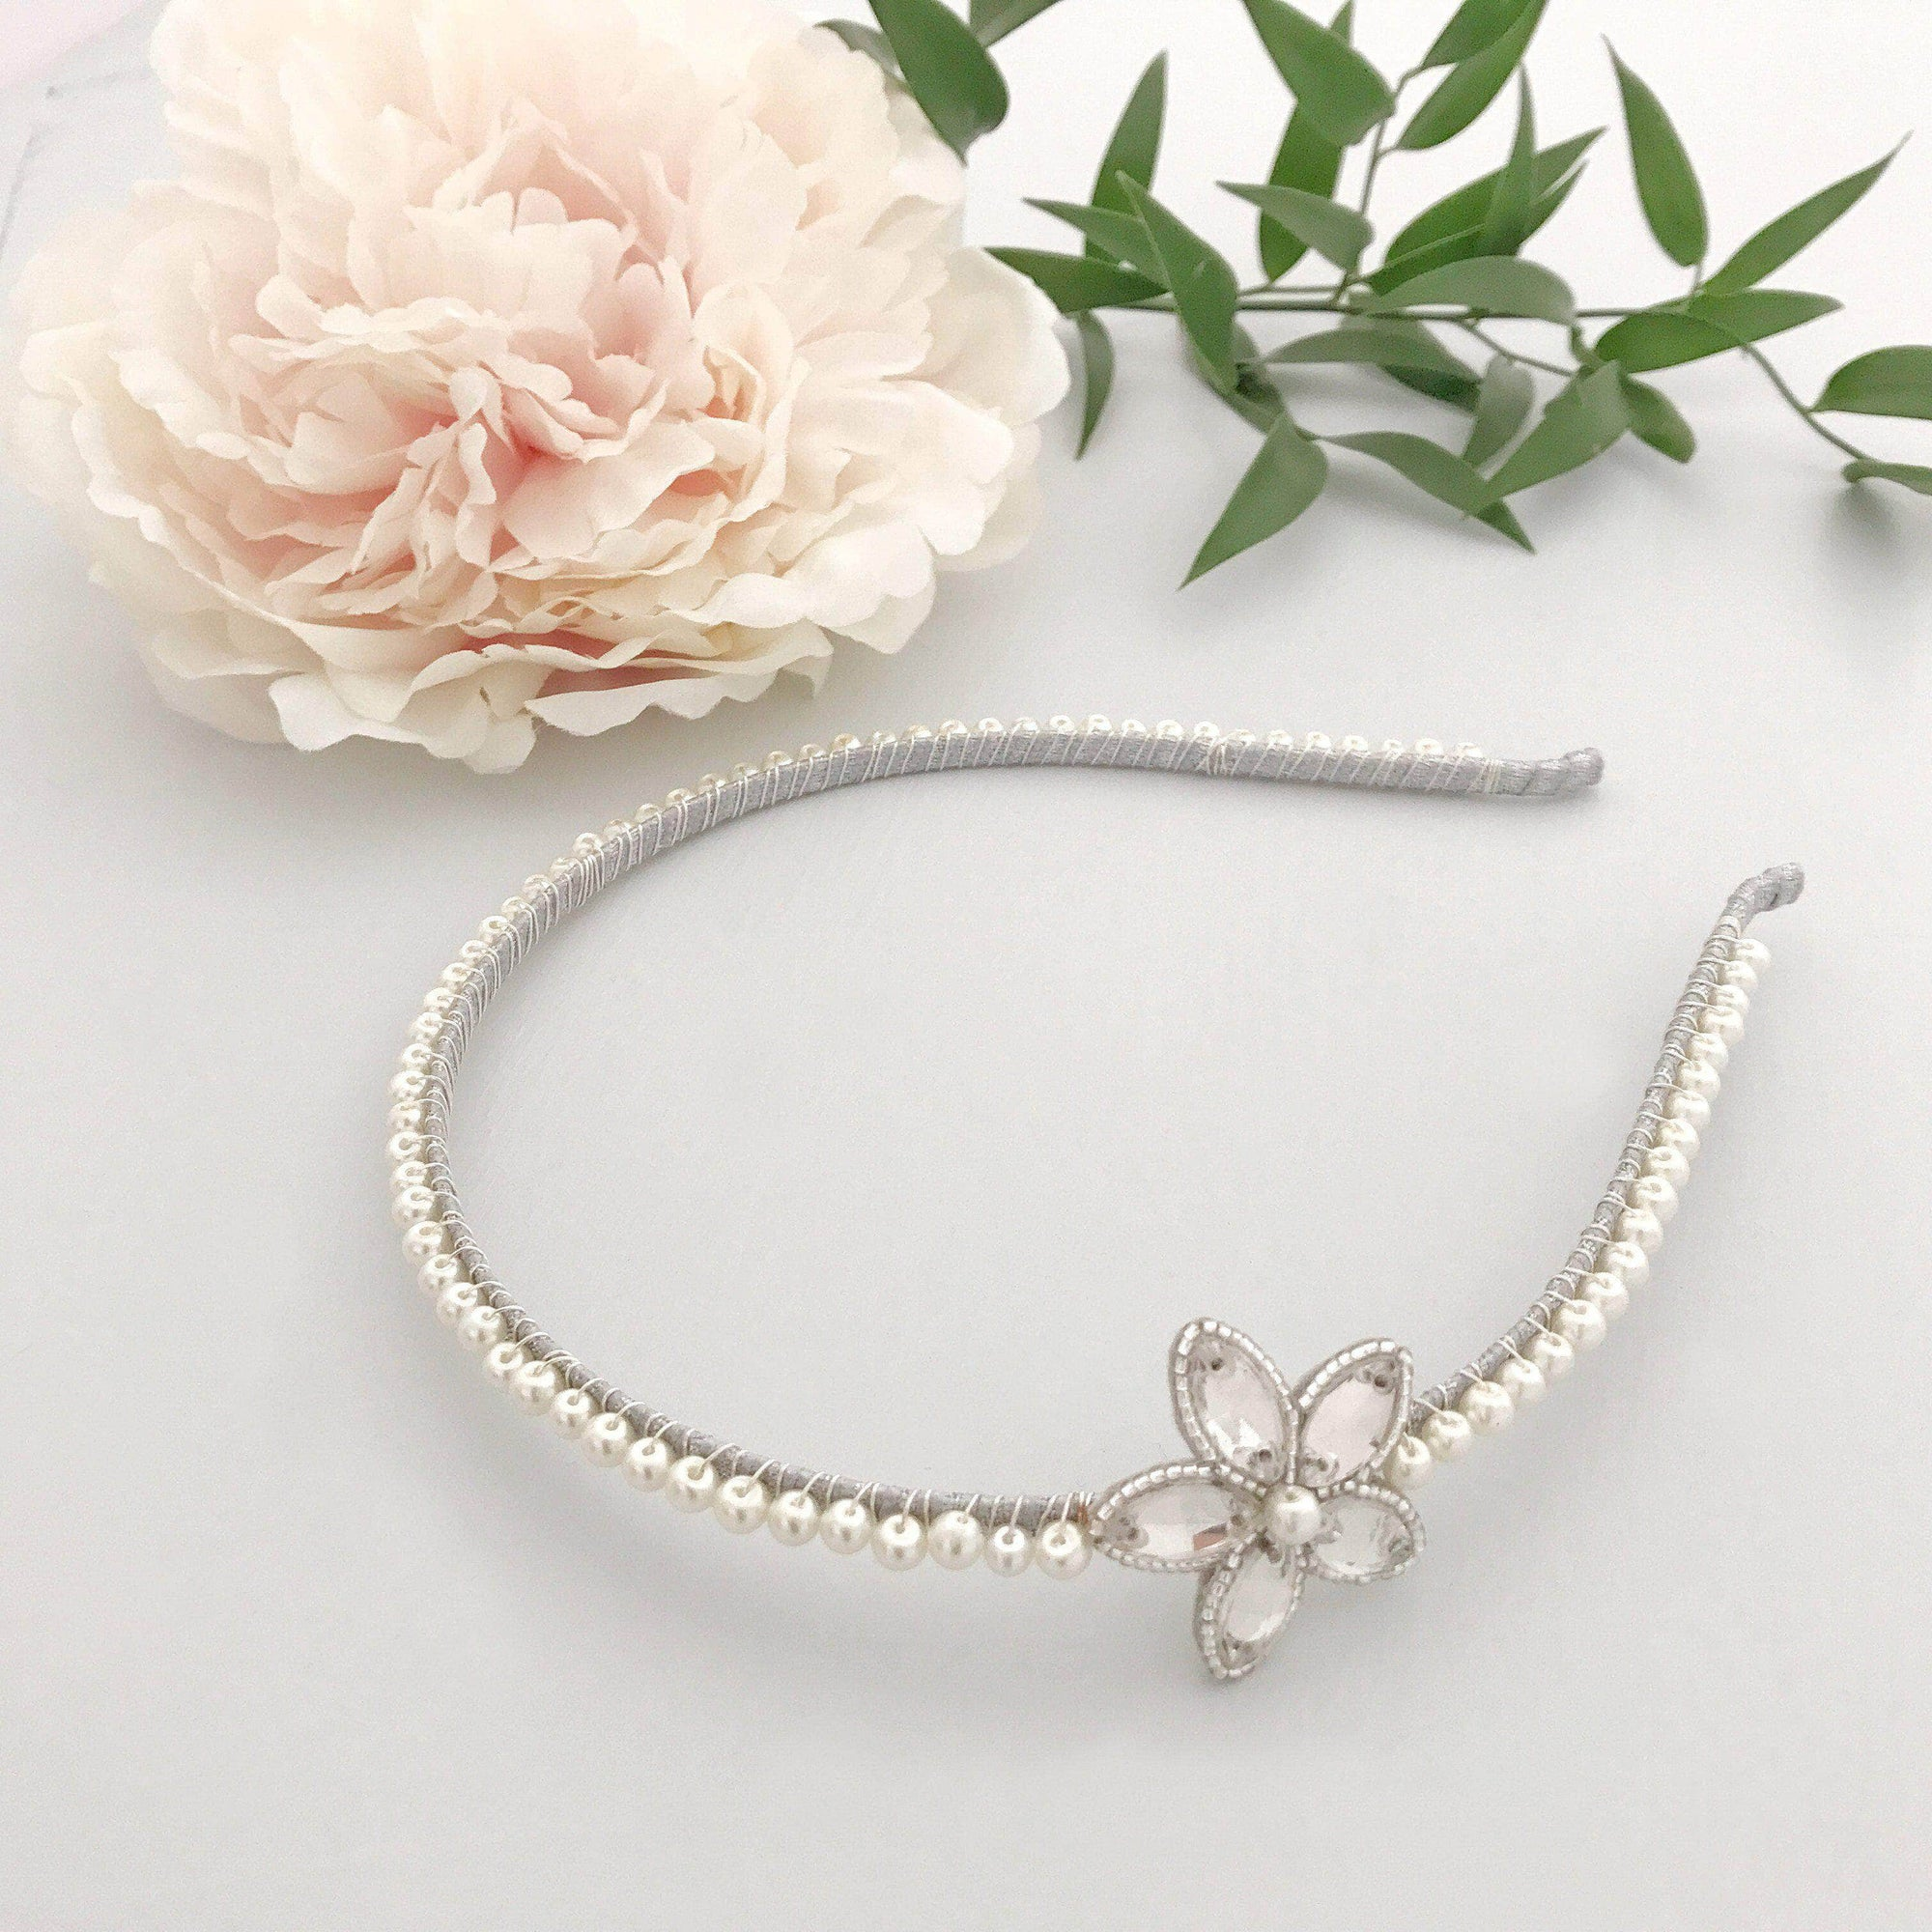 Silver crystal wedding hair band